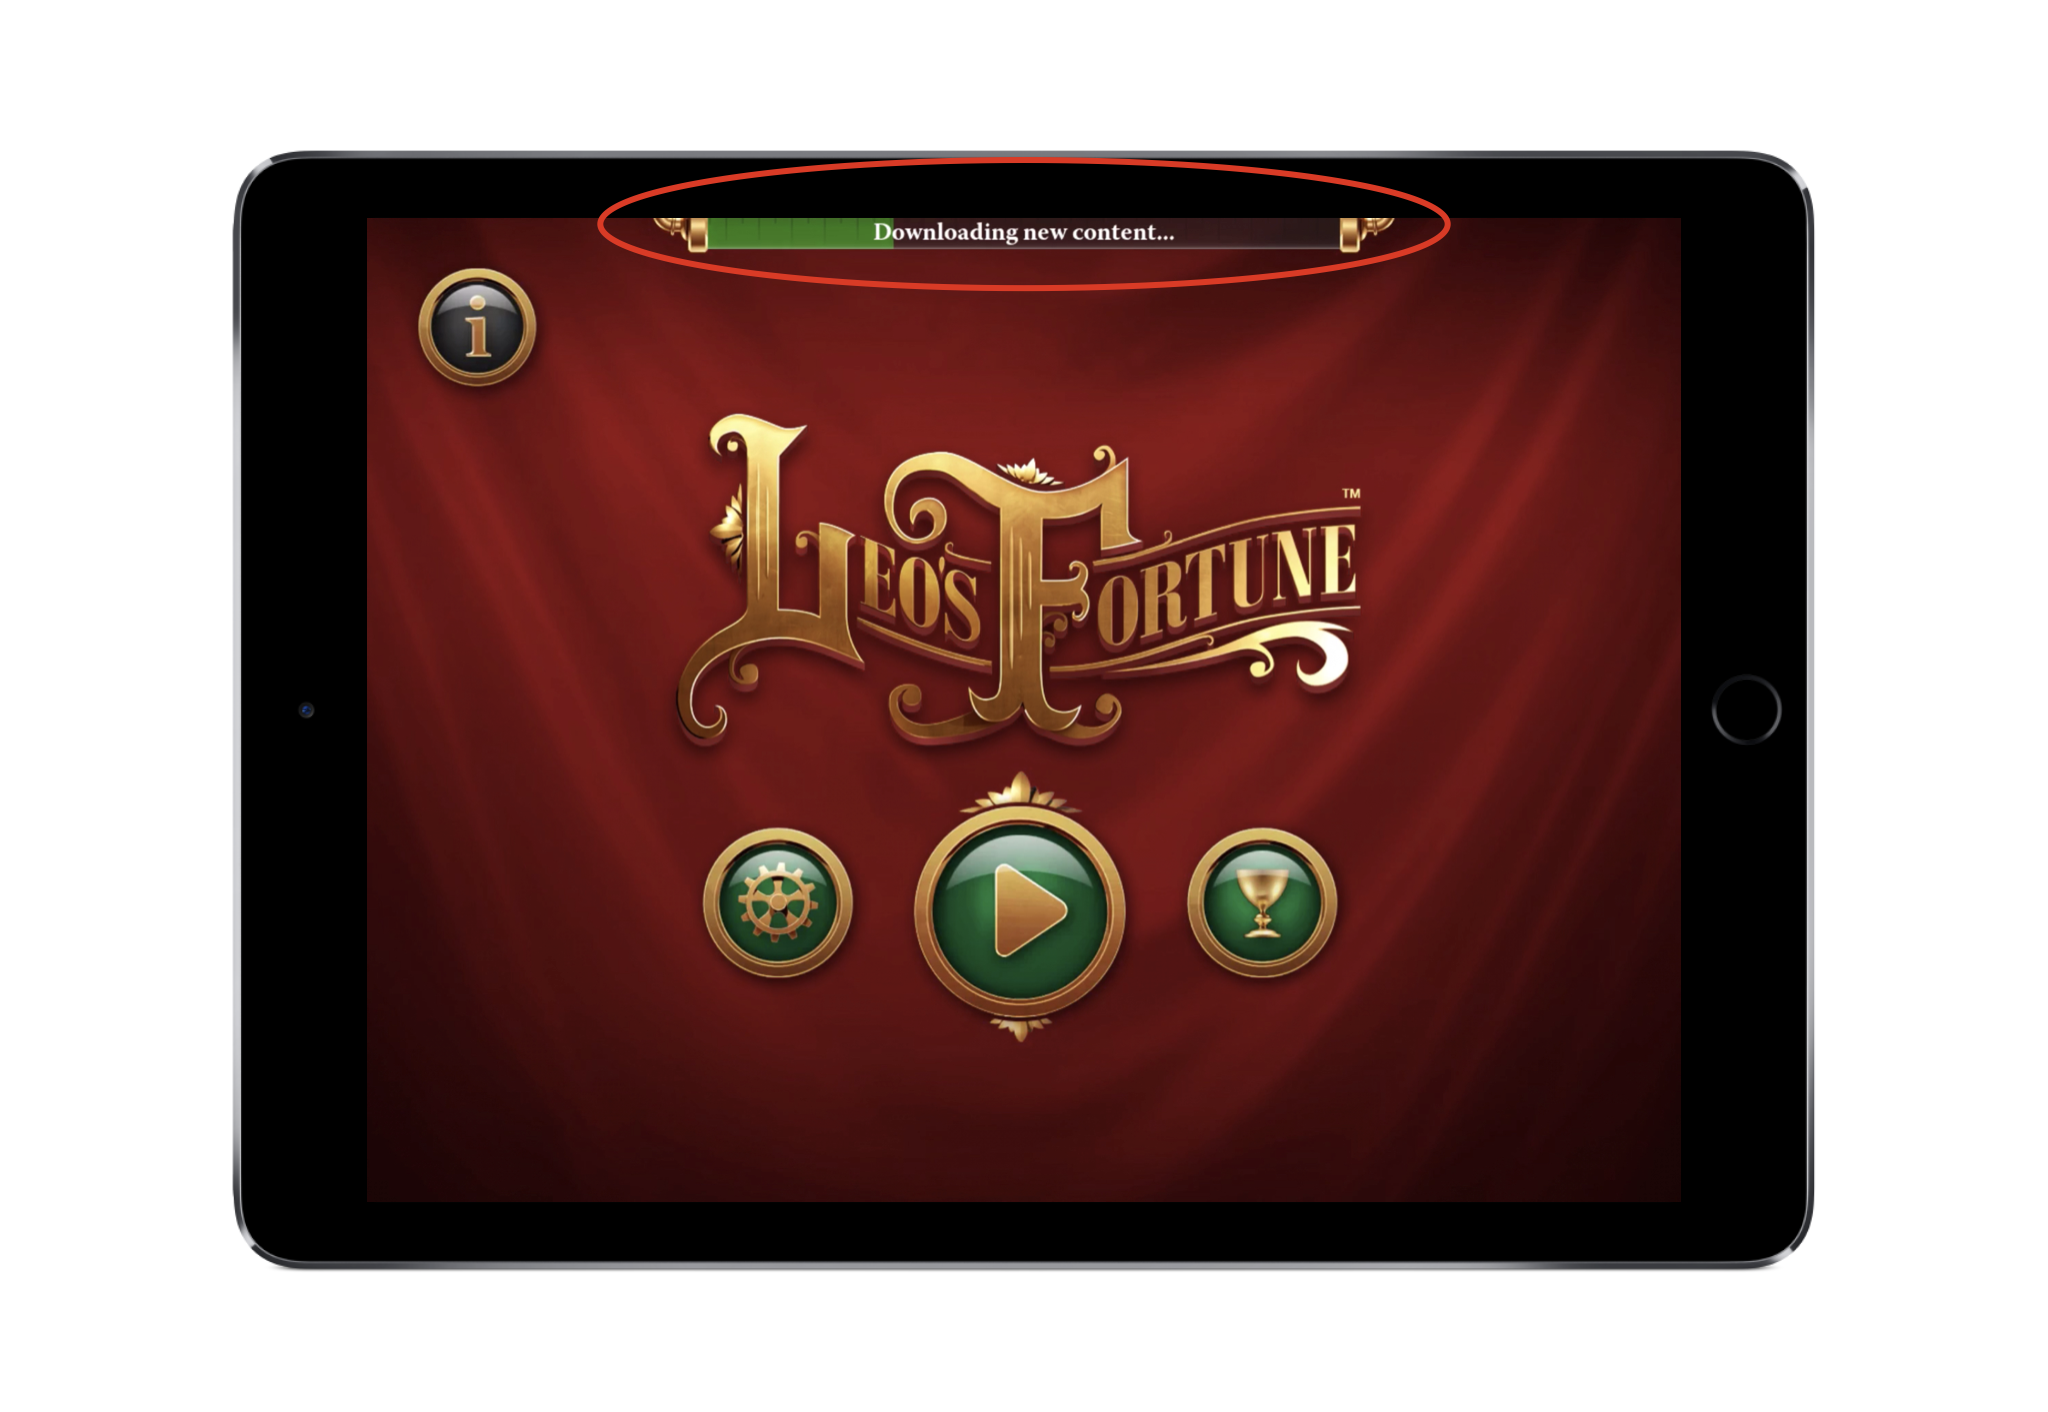 Leo's Fortune  begins to download additional content upon launch but still allows the user to progress forward.